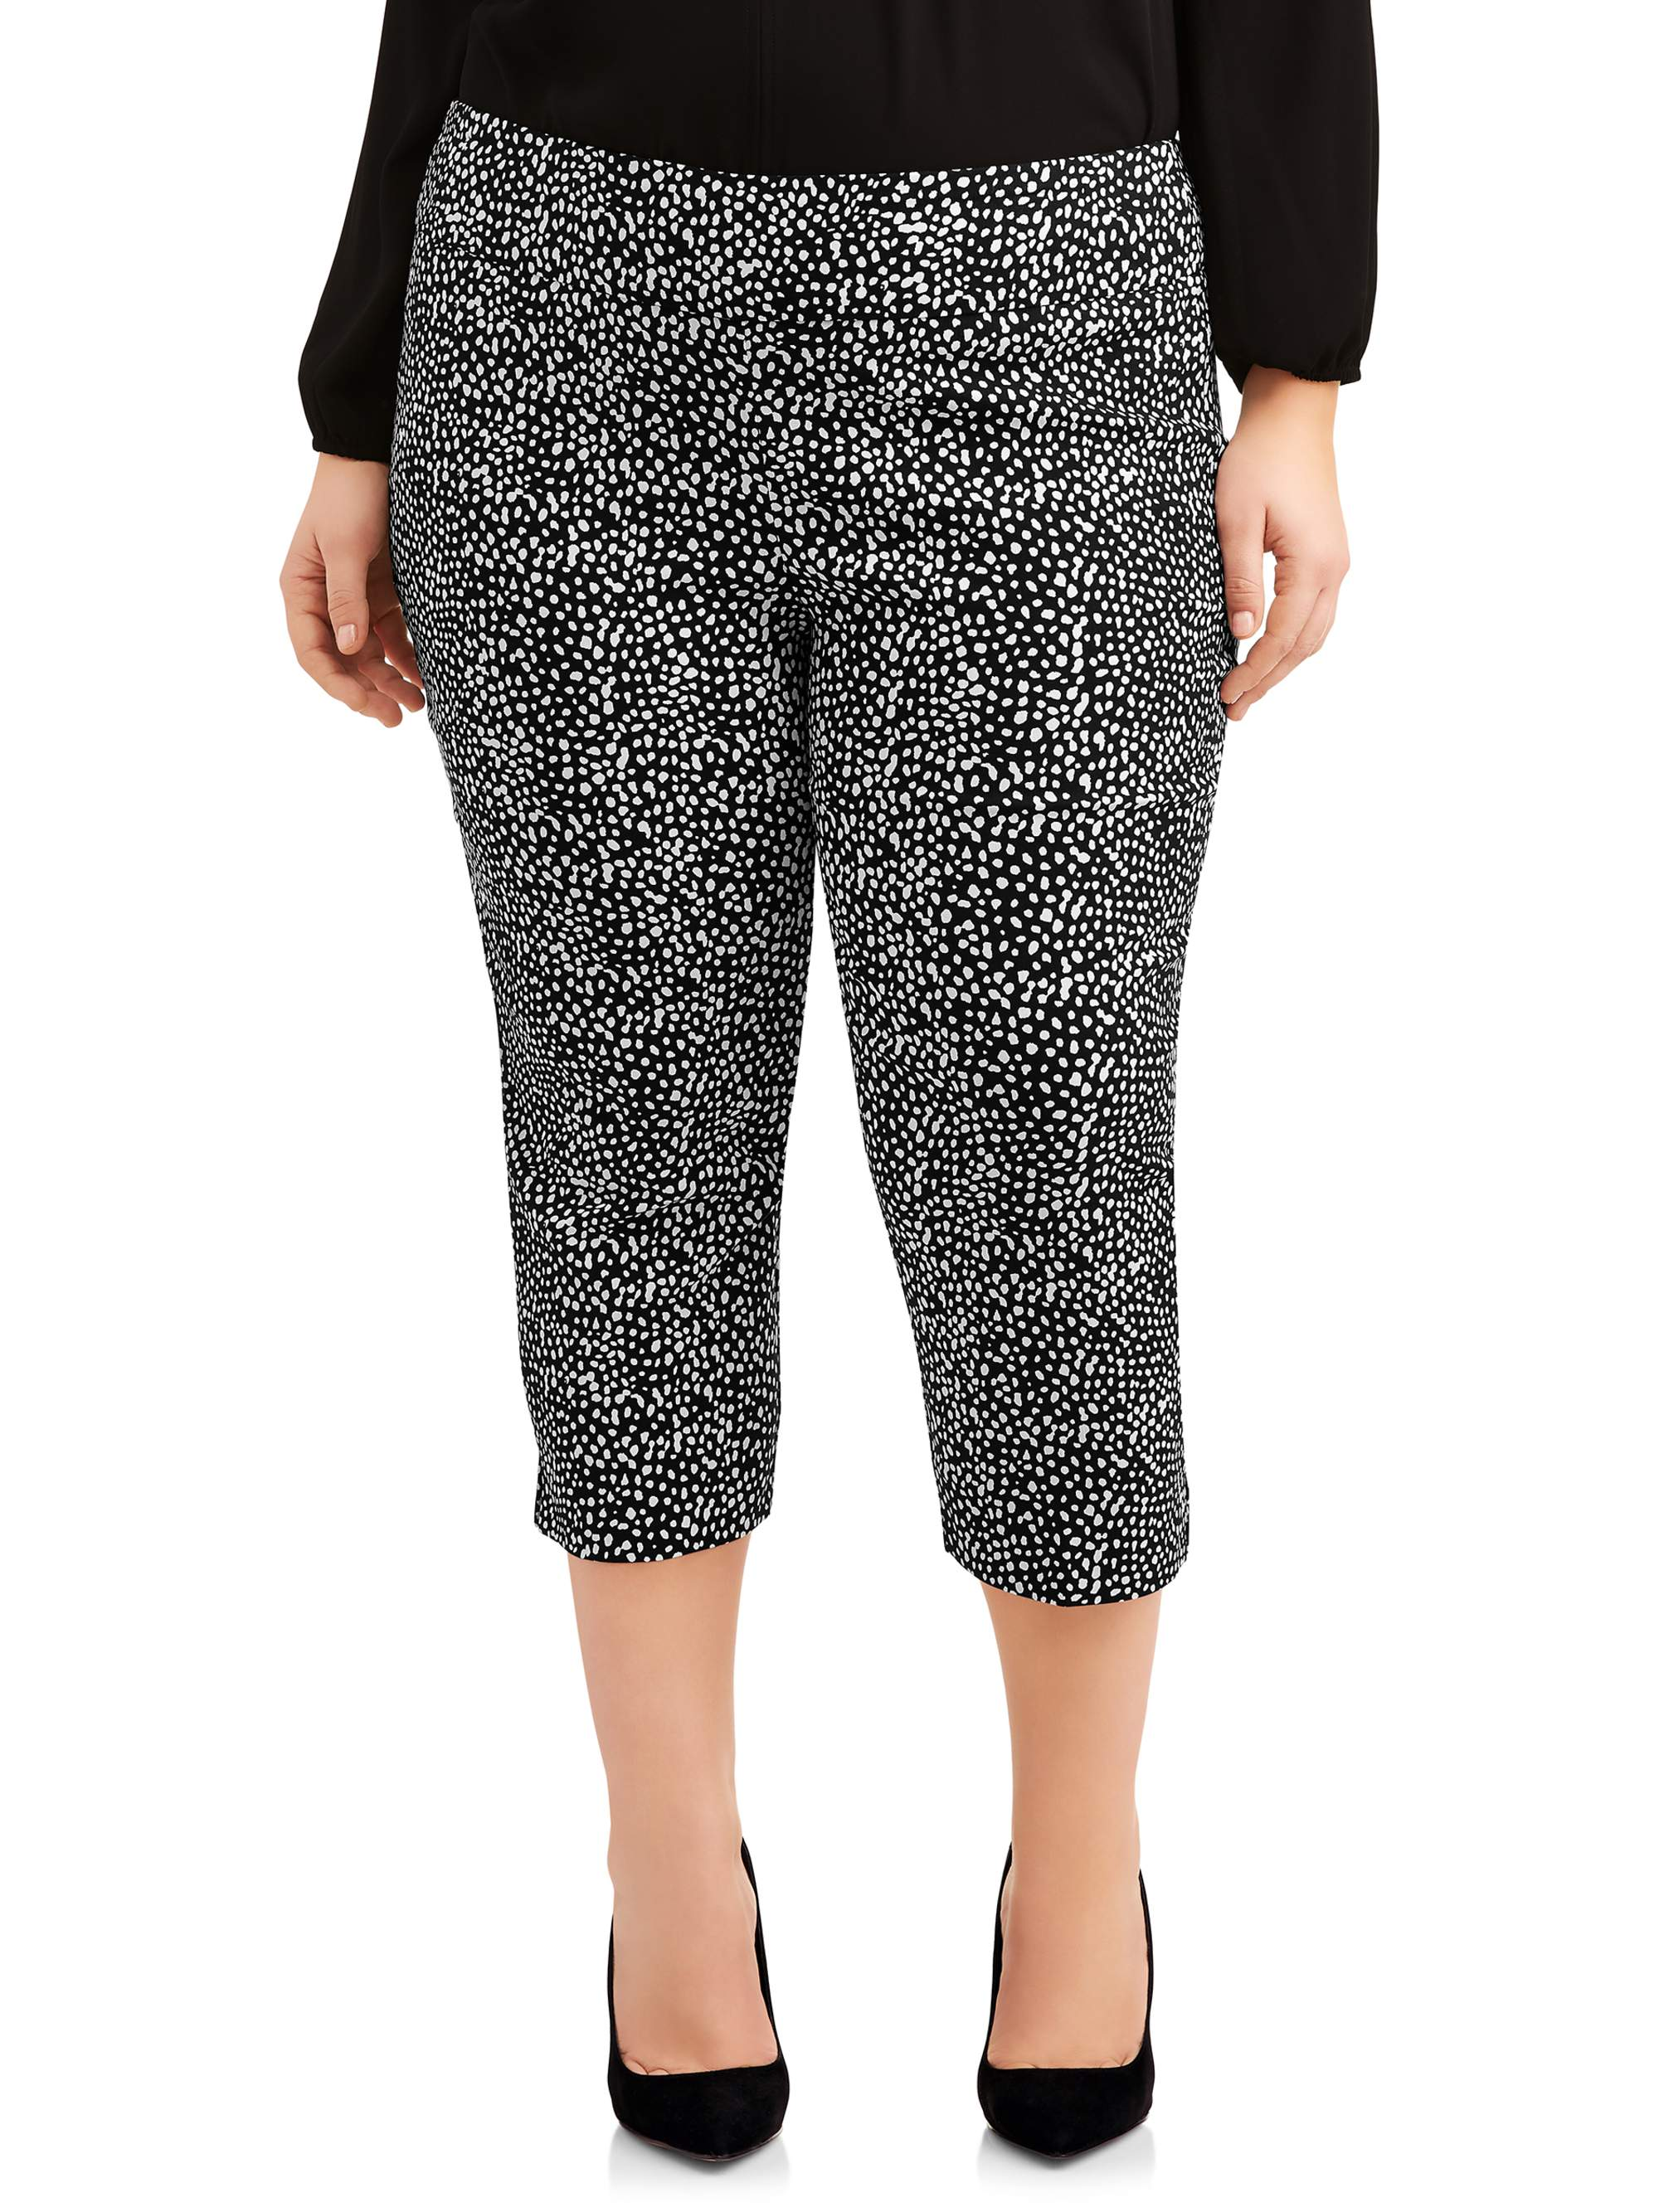 Women's Plus Size Black and White Stretch Woven Ankle Pant